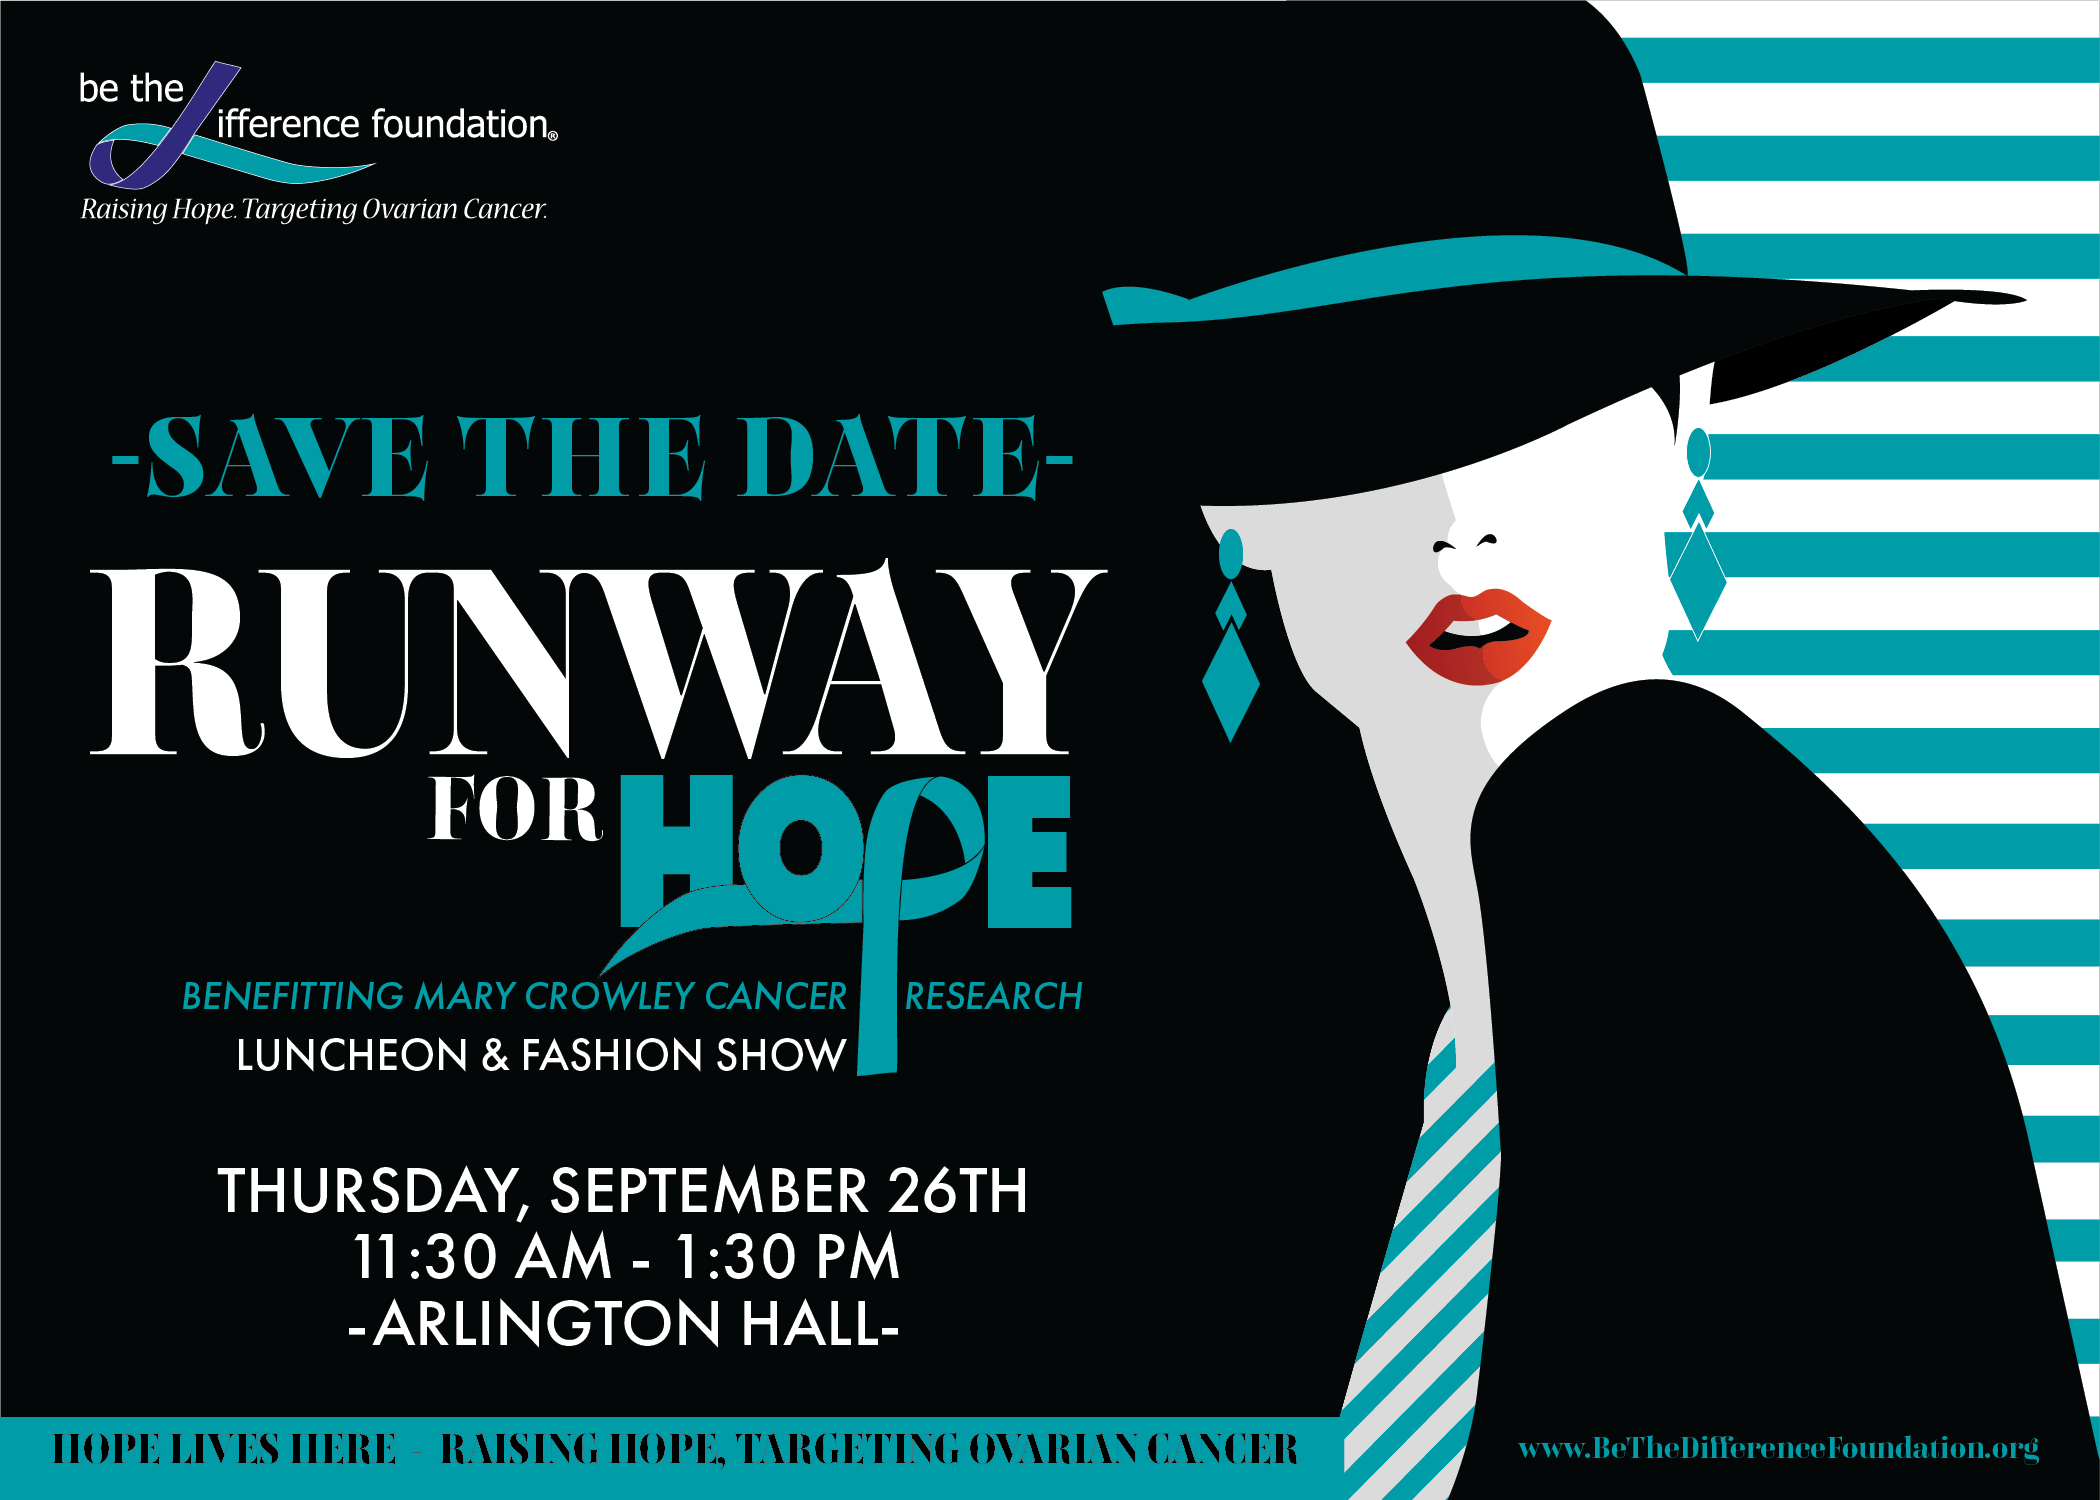 Runway for Hope Luncheon & Fashion Show